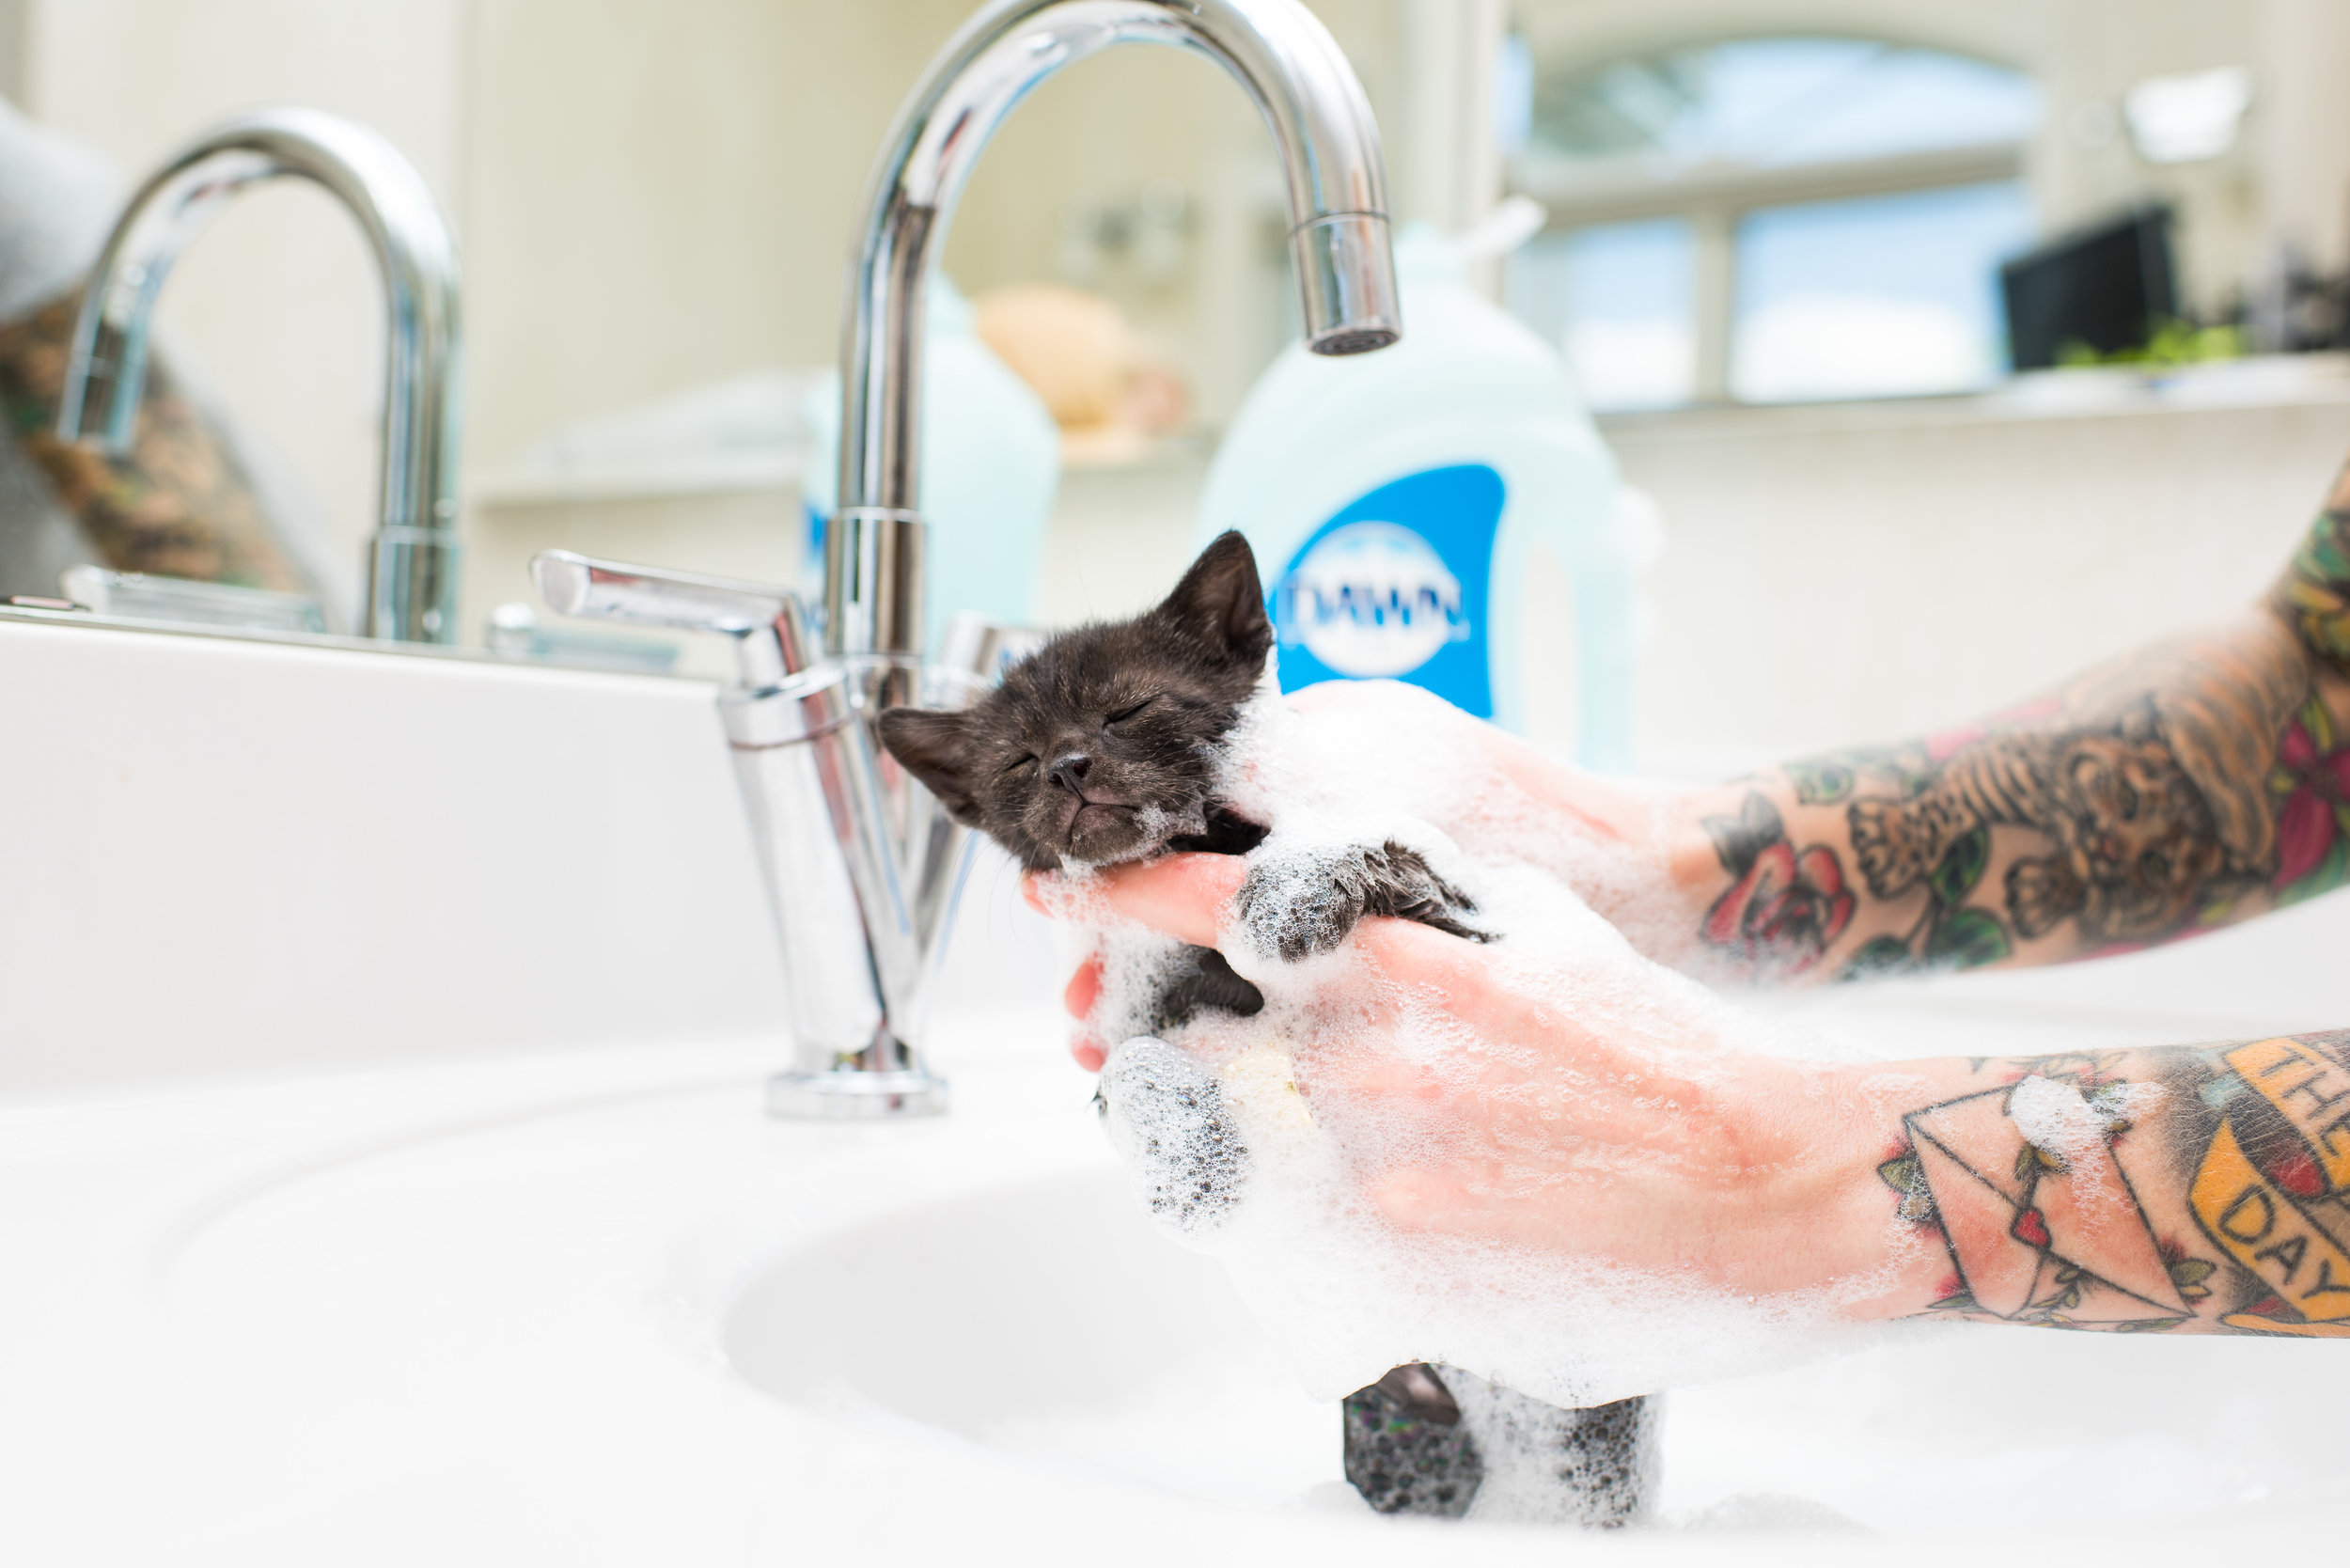 Neonatal kittens can't receive topical flea treatment. Instead, kill the fleas by carefully washing the kitten with unscented dish liquid.